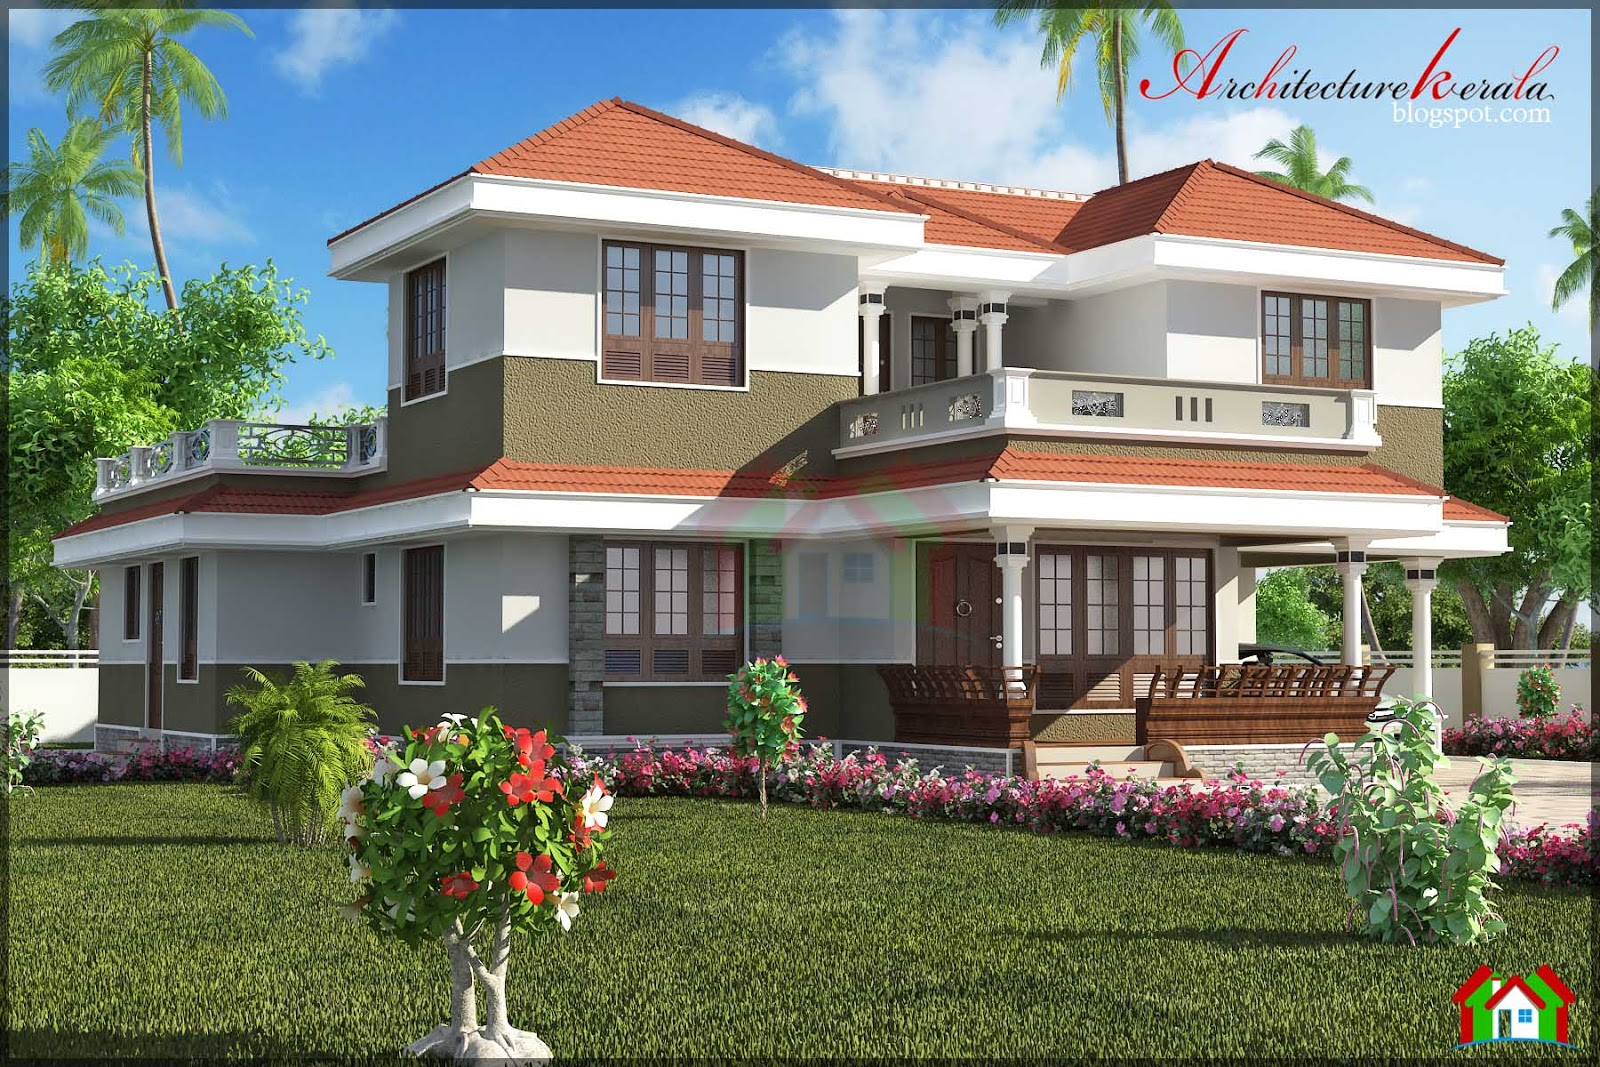 Traditional kerala houses plans home design and style for Kerala houses designs